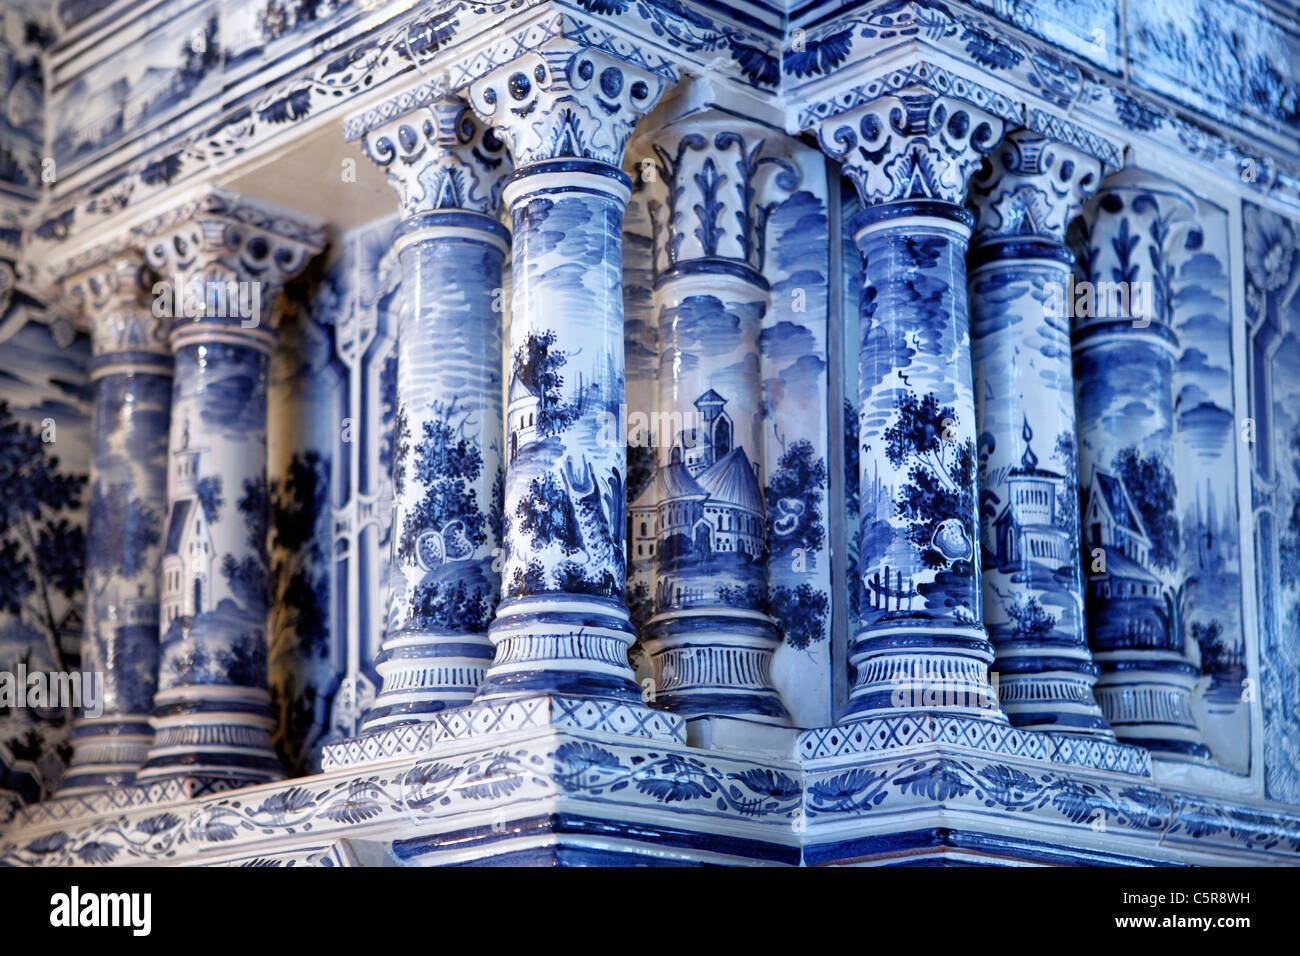 ceramic tiled stove stockfotos ceramic tiled stove bilder alamy. Black Bedroom Furniture Sets. Home Design Ideas